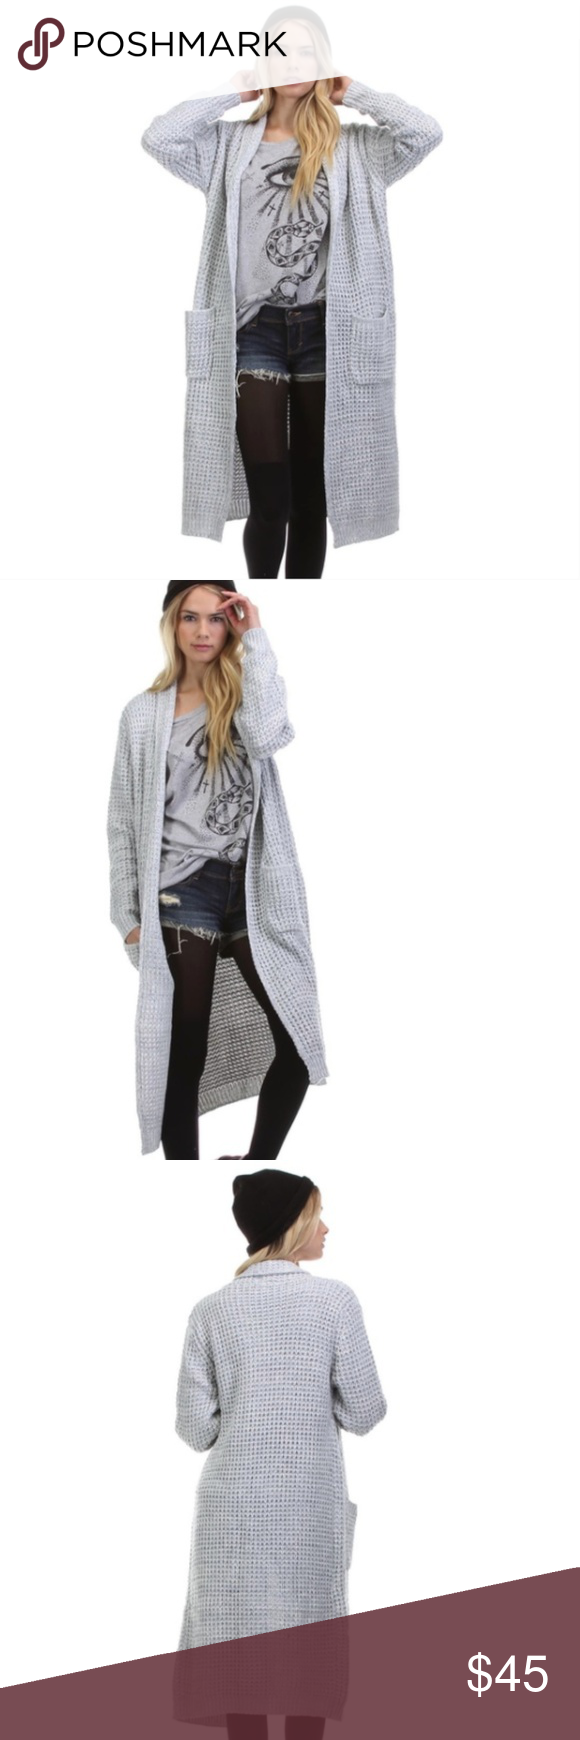 Light Gray Maxi Cardigan Sweater Boutique